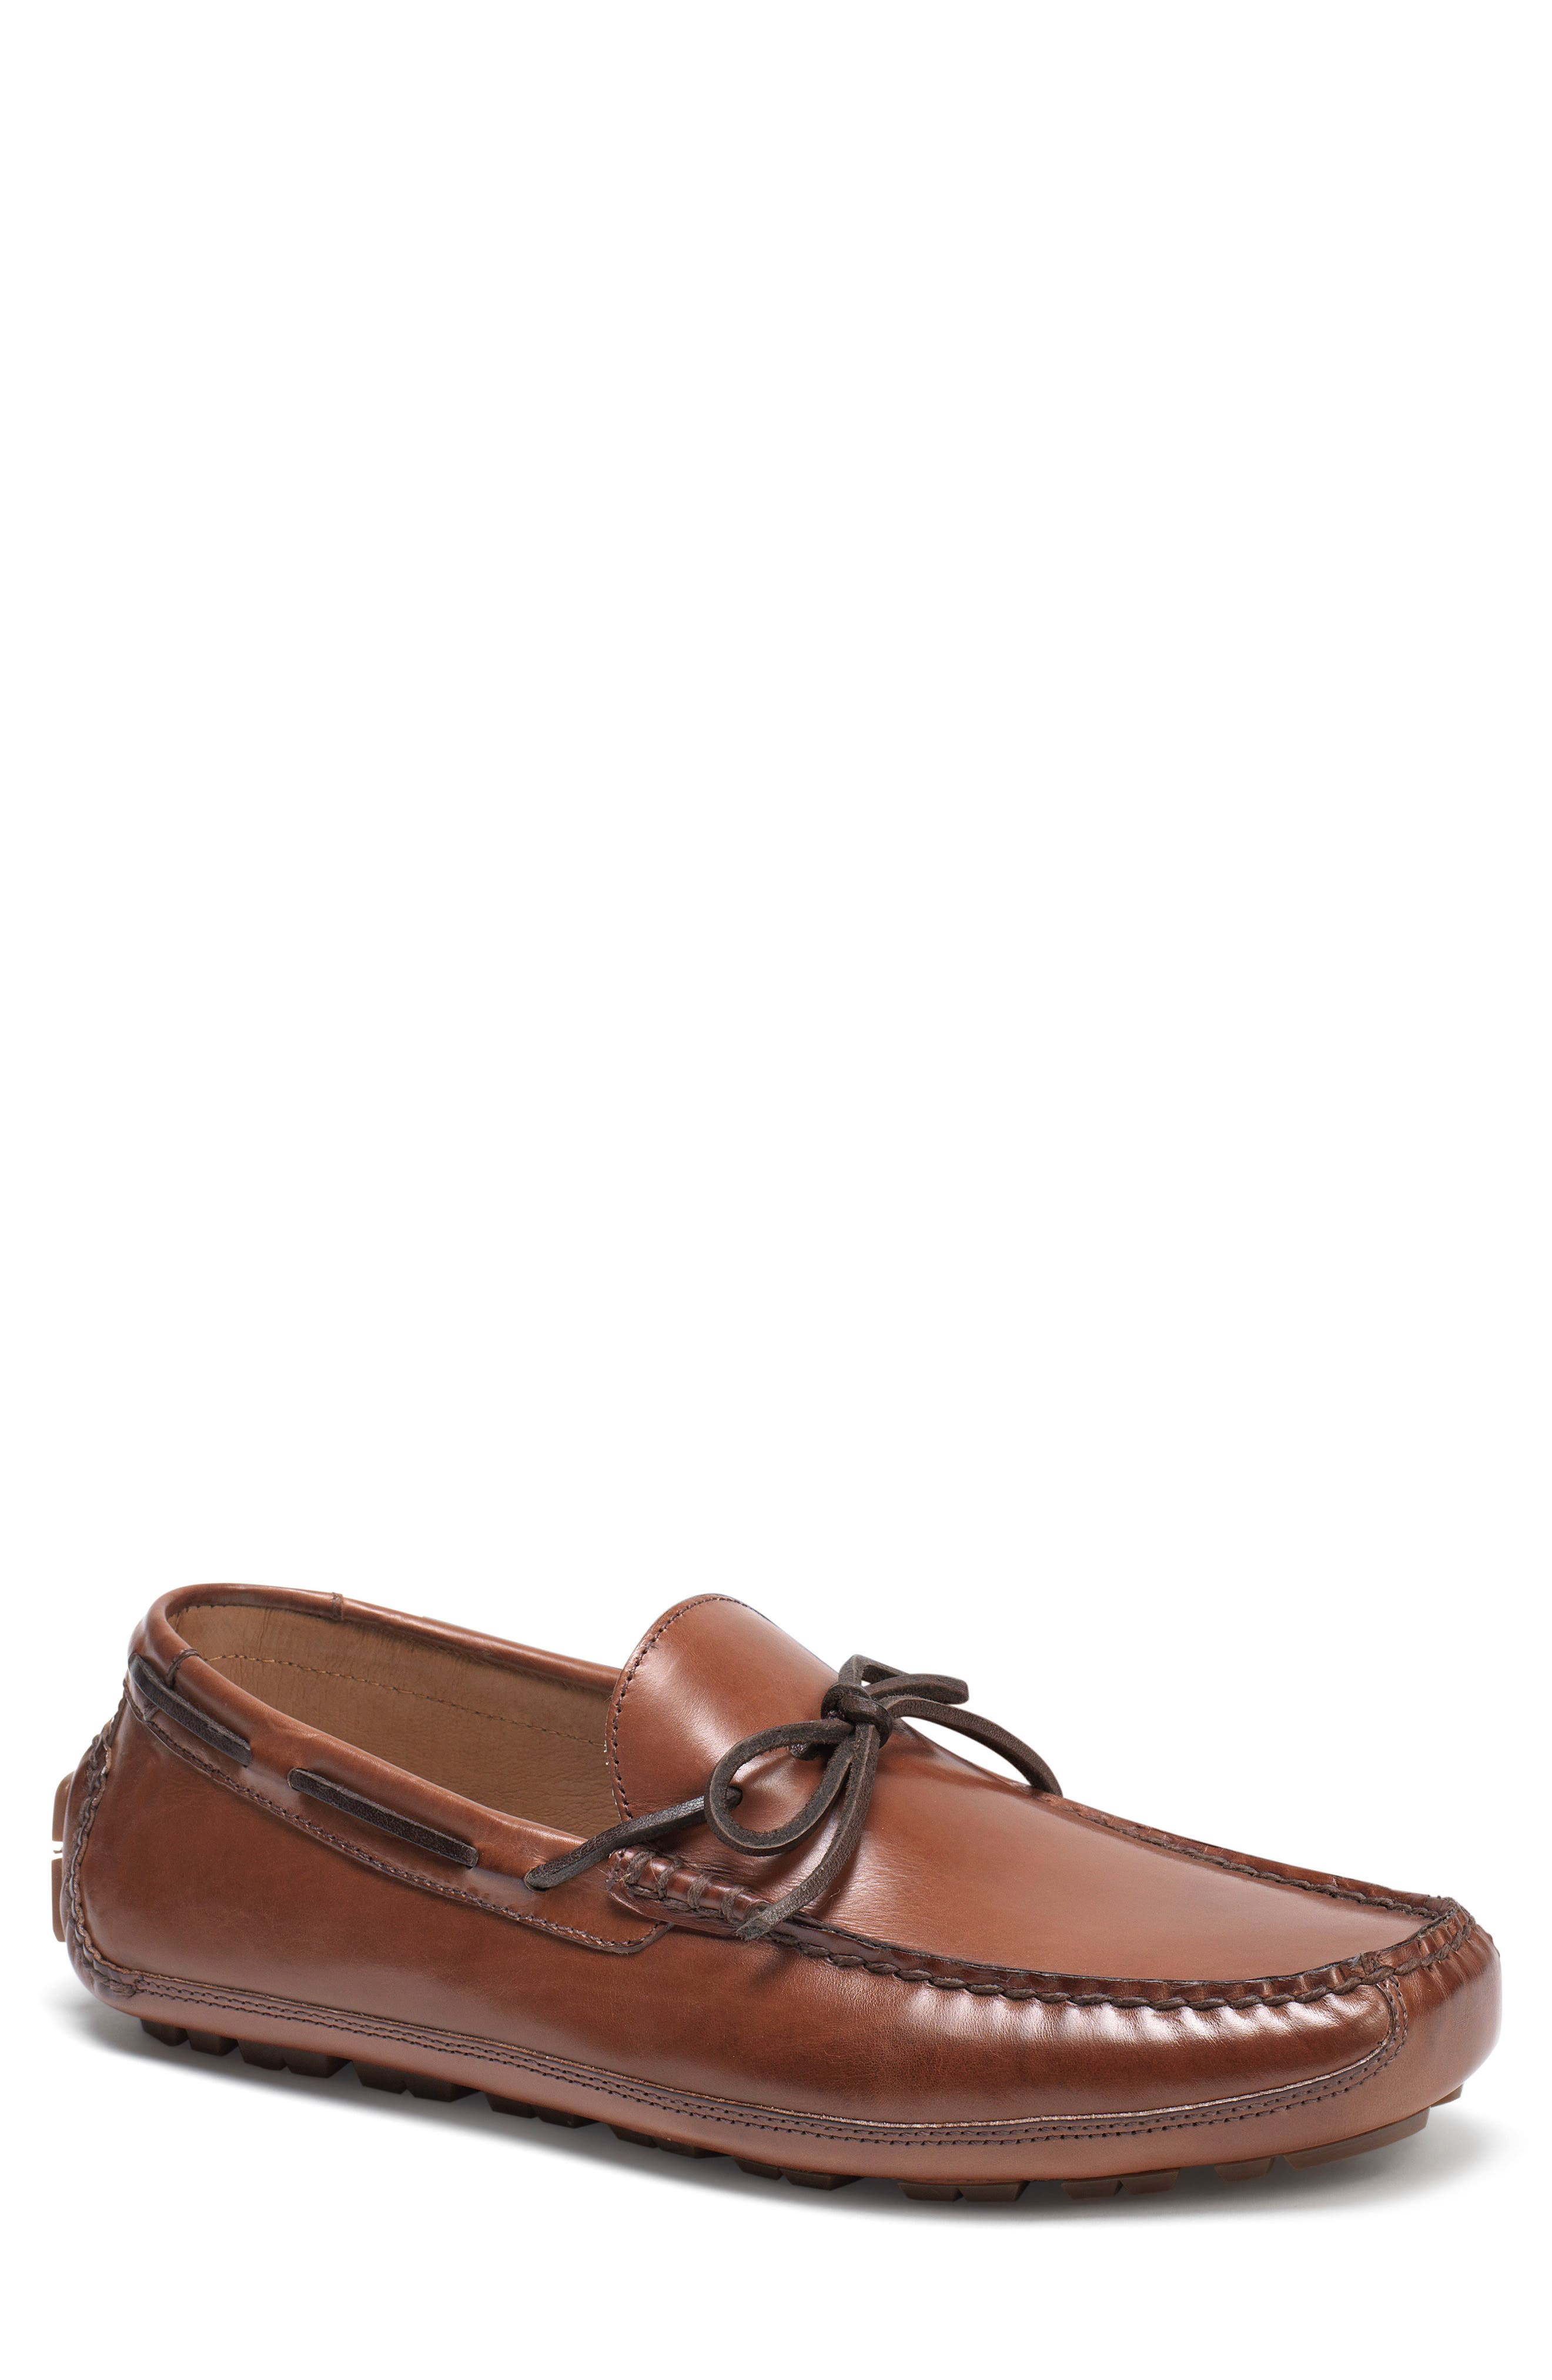 Dillion Driving Loafer,                             Main thumbnail 1, color,                             BROWN LEATHER